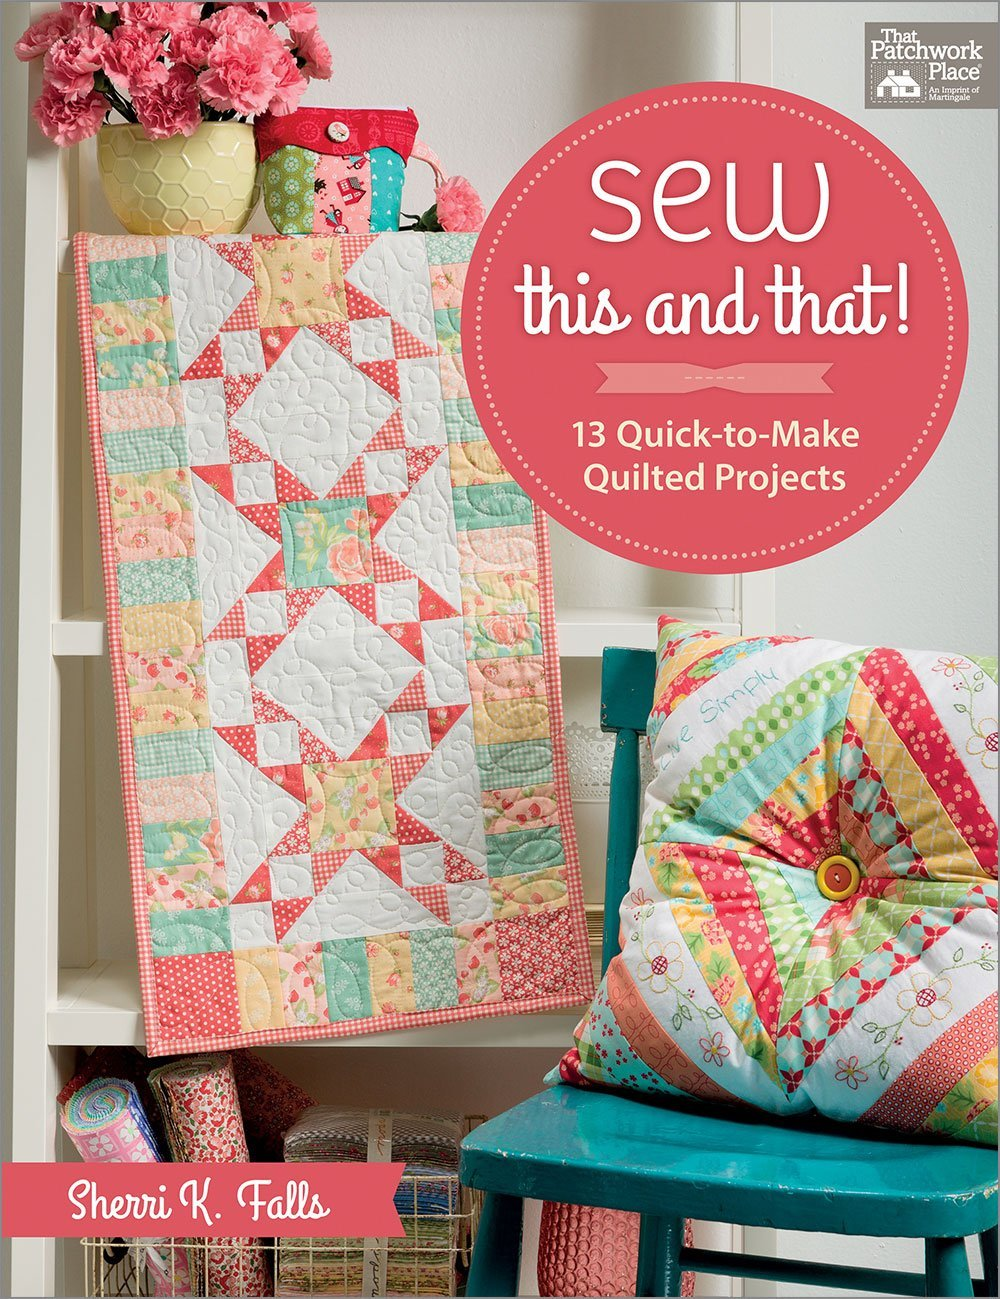 Sew This and That - Patchwork Place